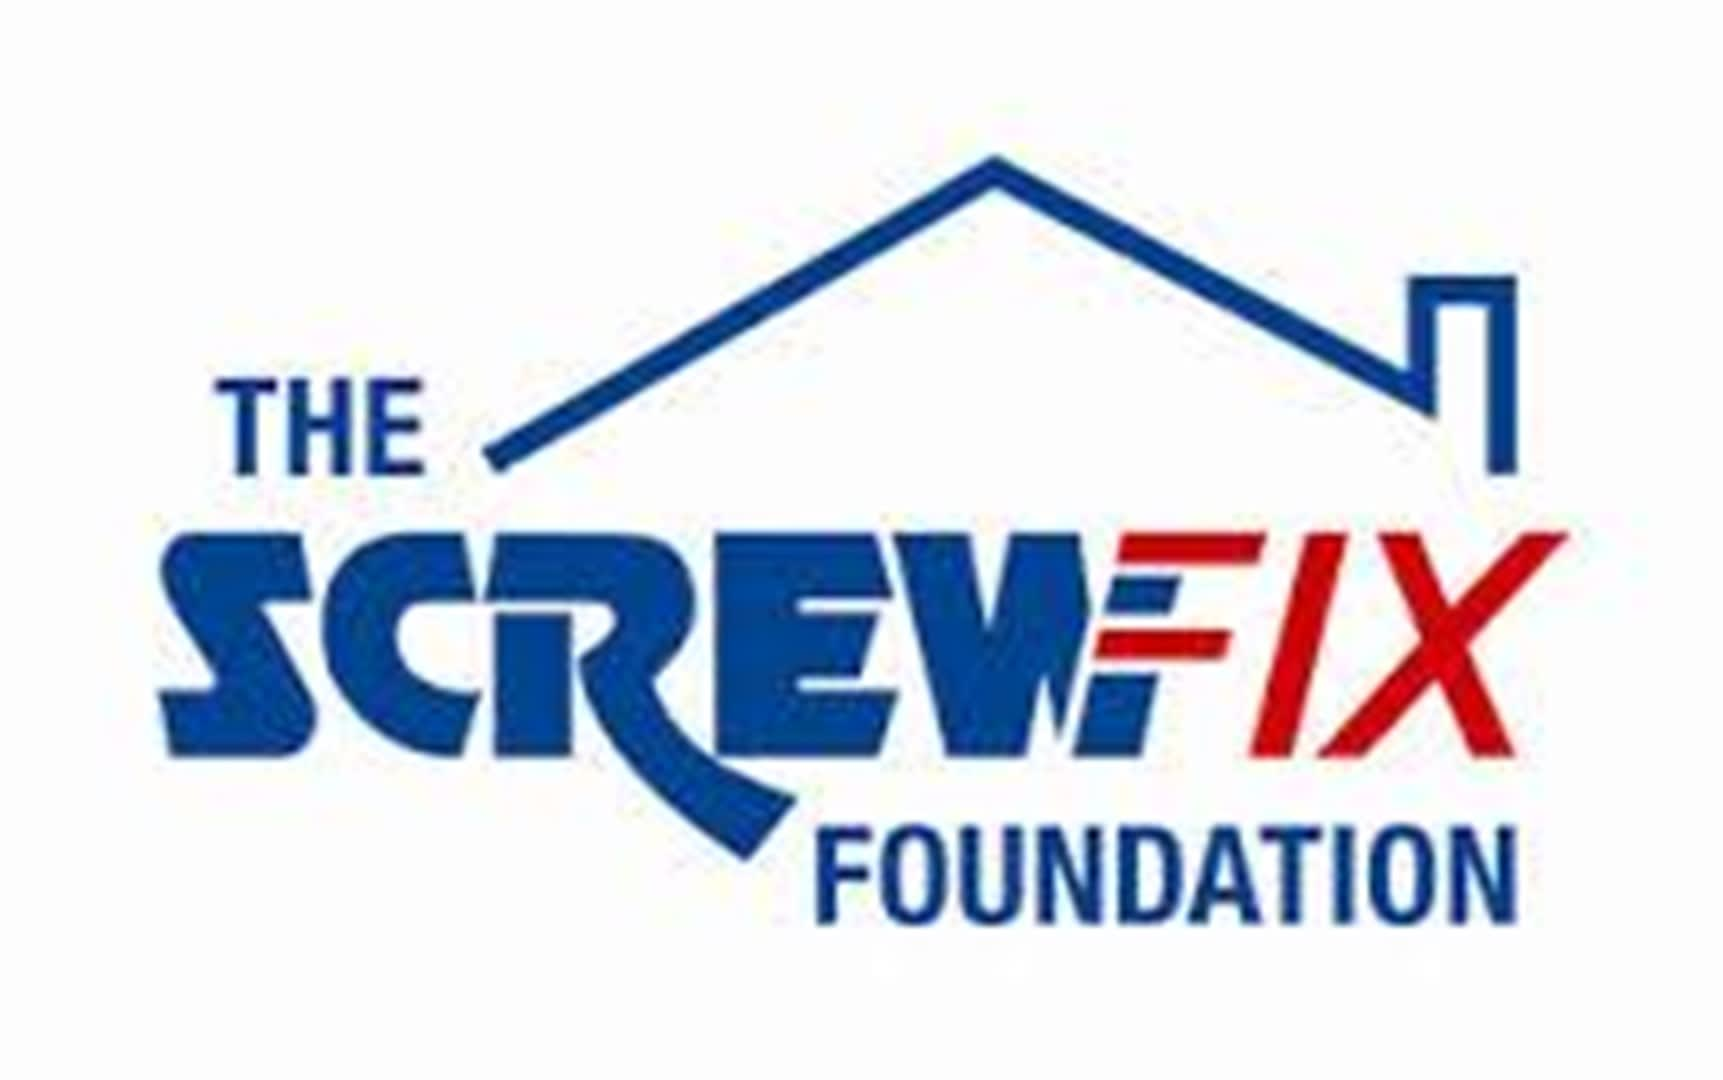 Screwfix Foundation